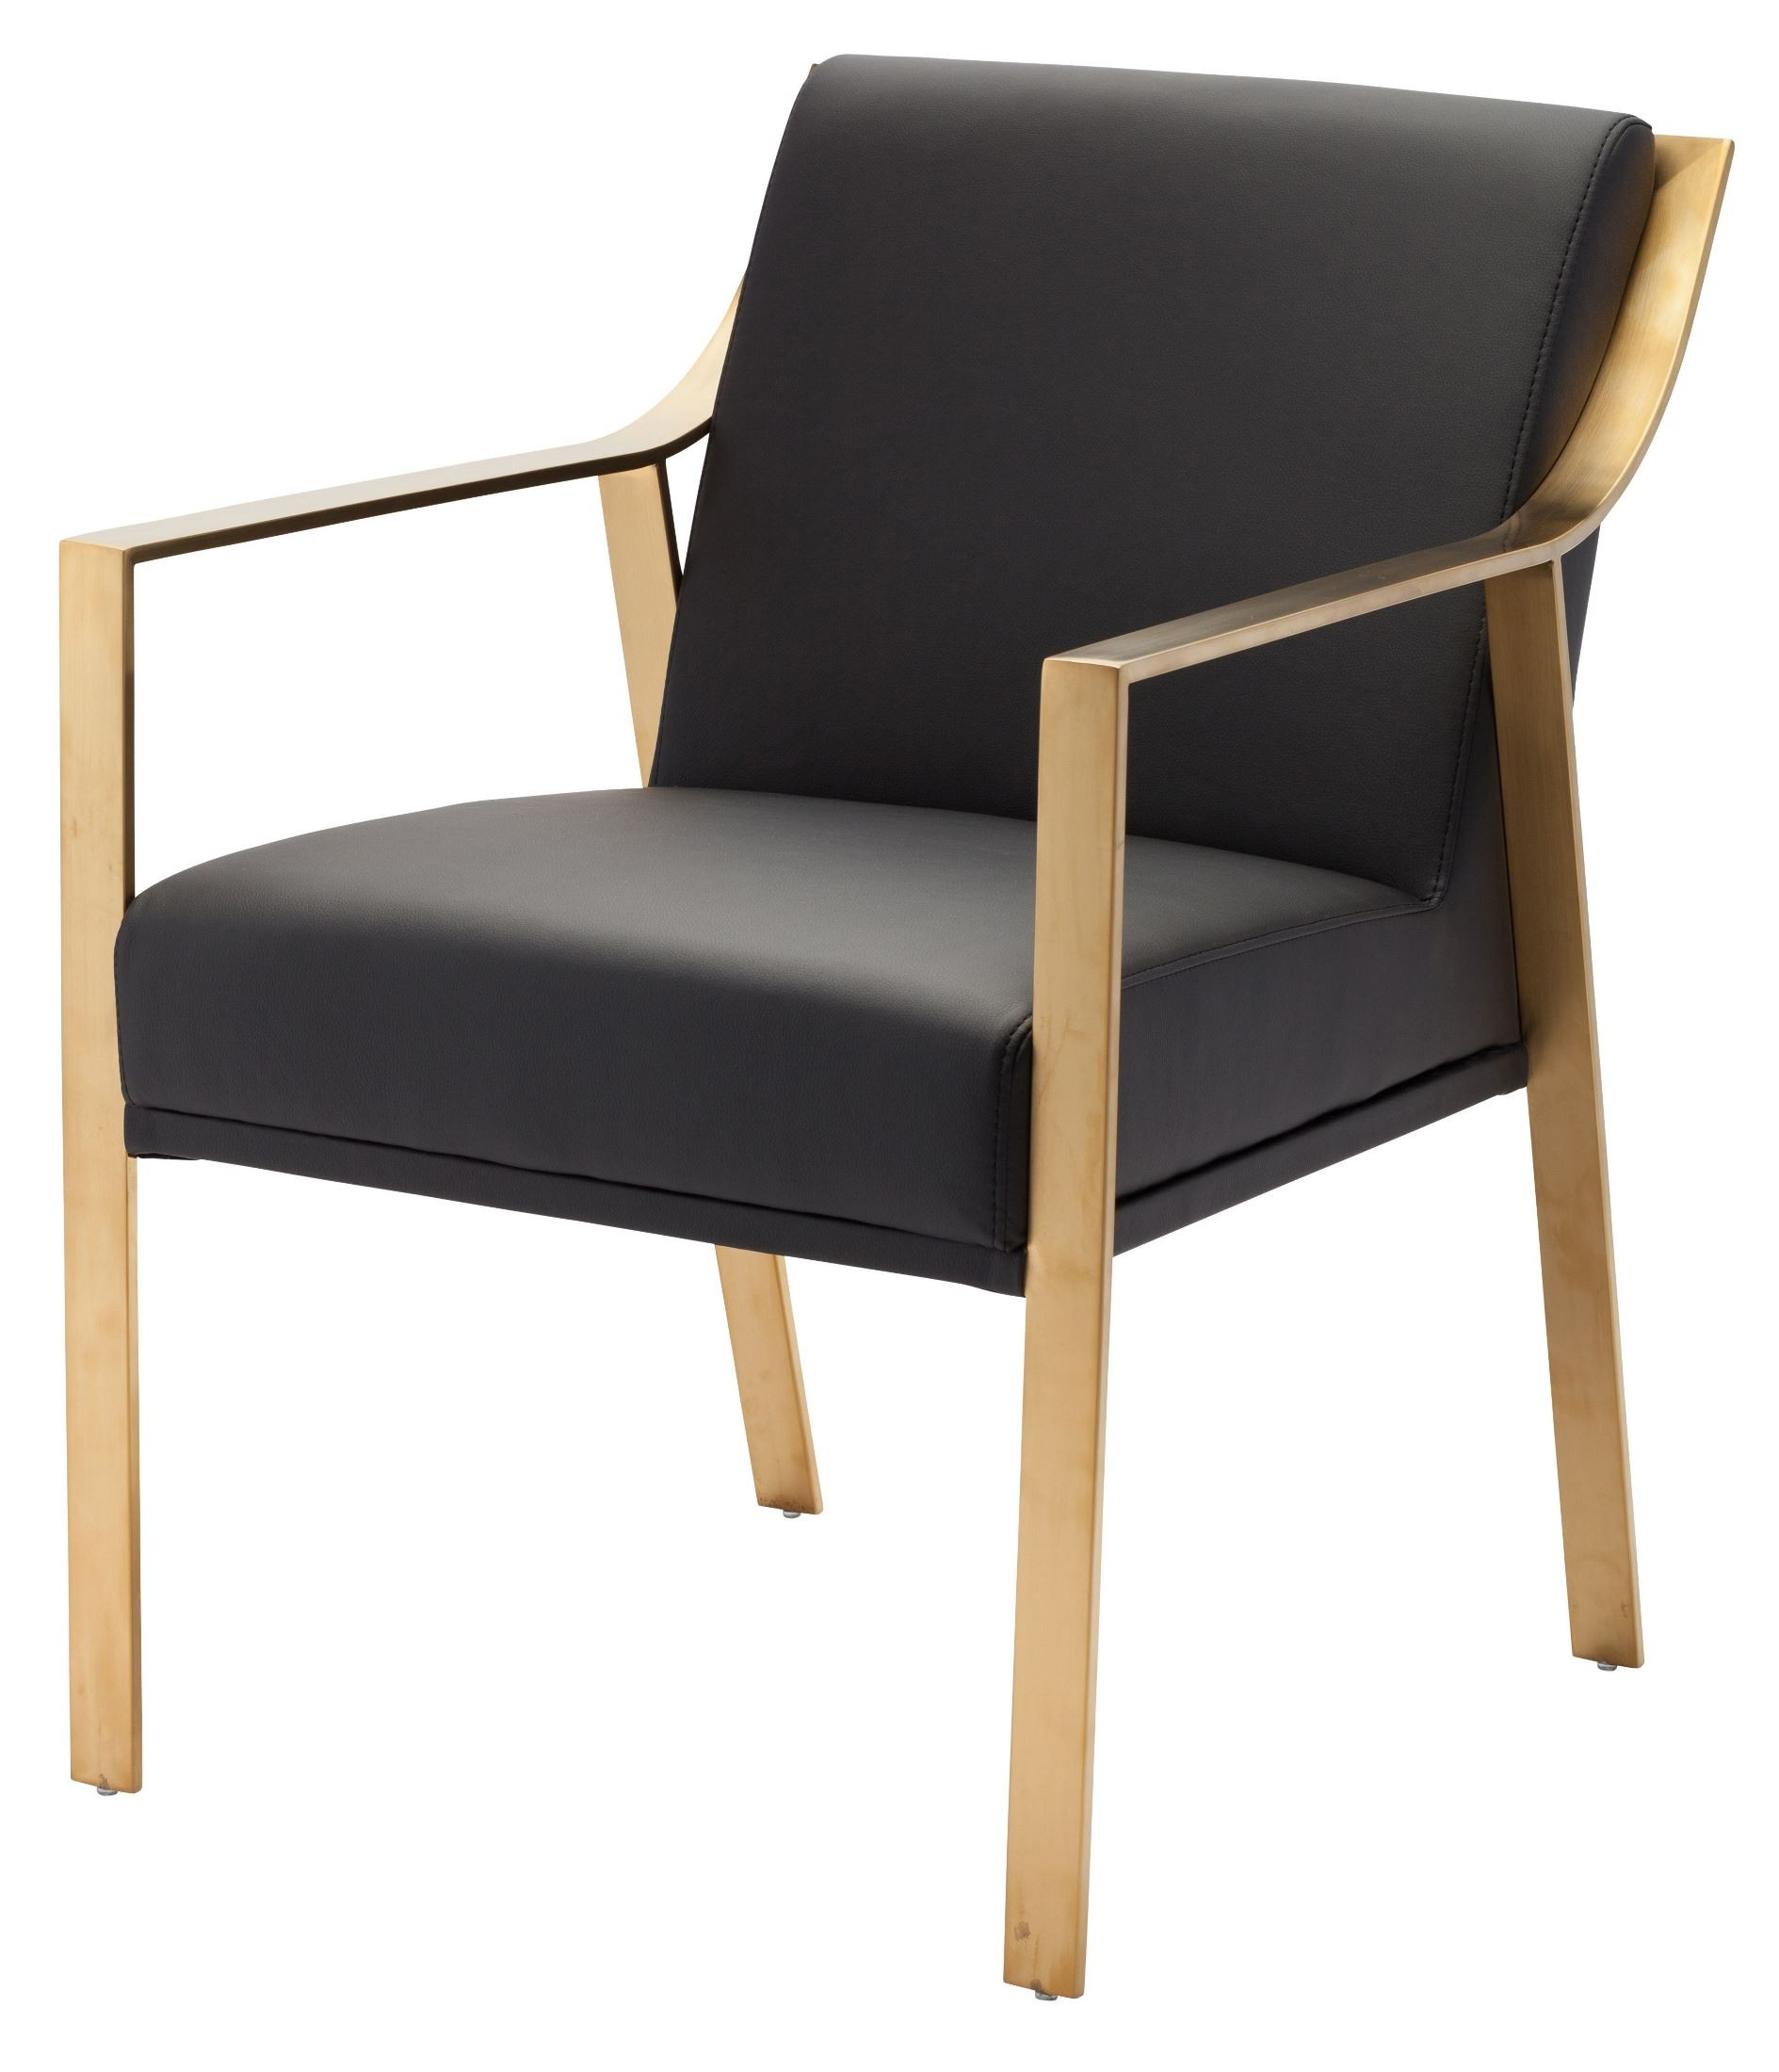 Valentine Black Naugahyde and Gold Metal Dining Chair from  : hgtb321hr from colemanfurniture.com size 1889 x 2200 jpeg 270kB